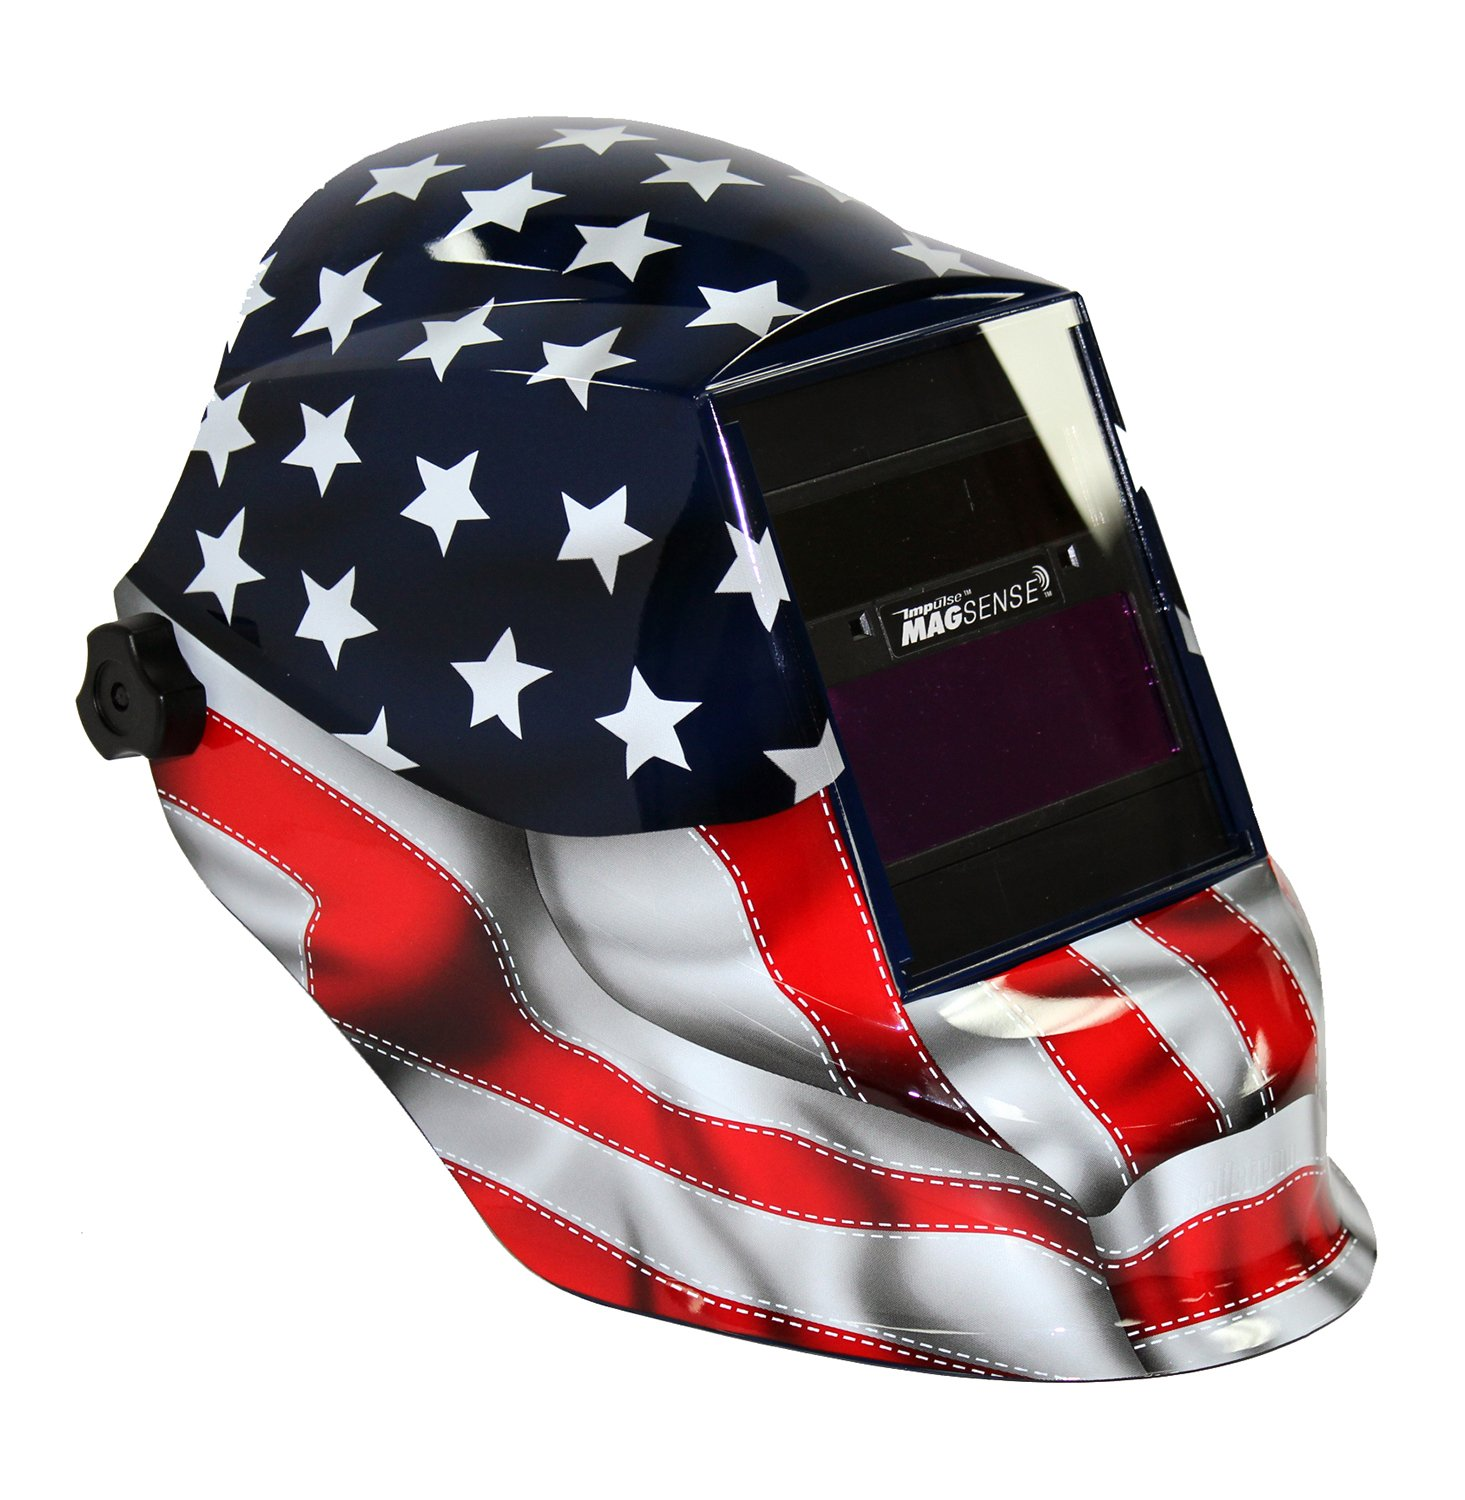 Sellstrom 41200GL-611 Old Glory Graphic Trident Welding Helmet with Impulse MagSense Magnetic Sensing Variable Shade 9-13 Auto-Darkening Filter by Sellstrom (Image #1)